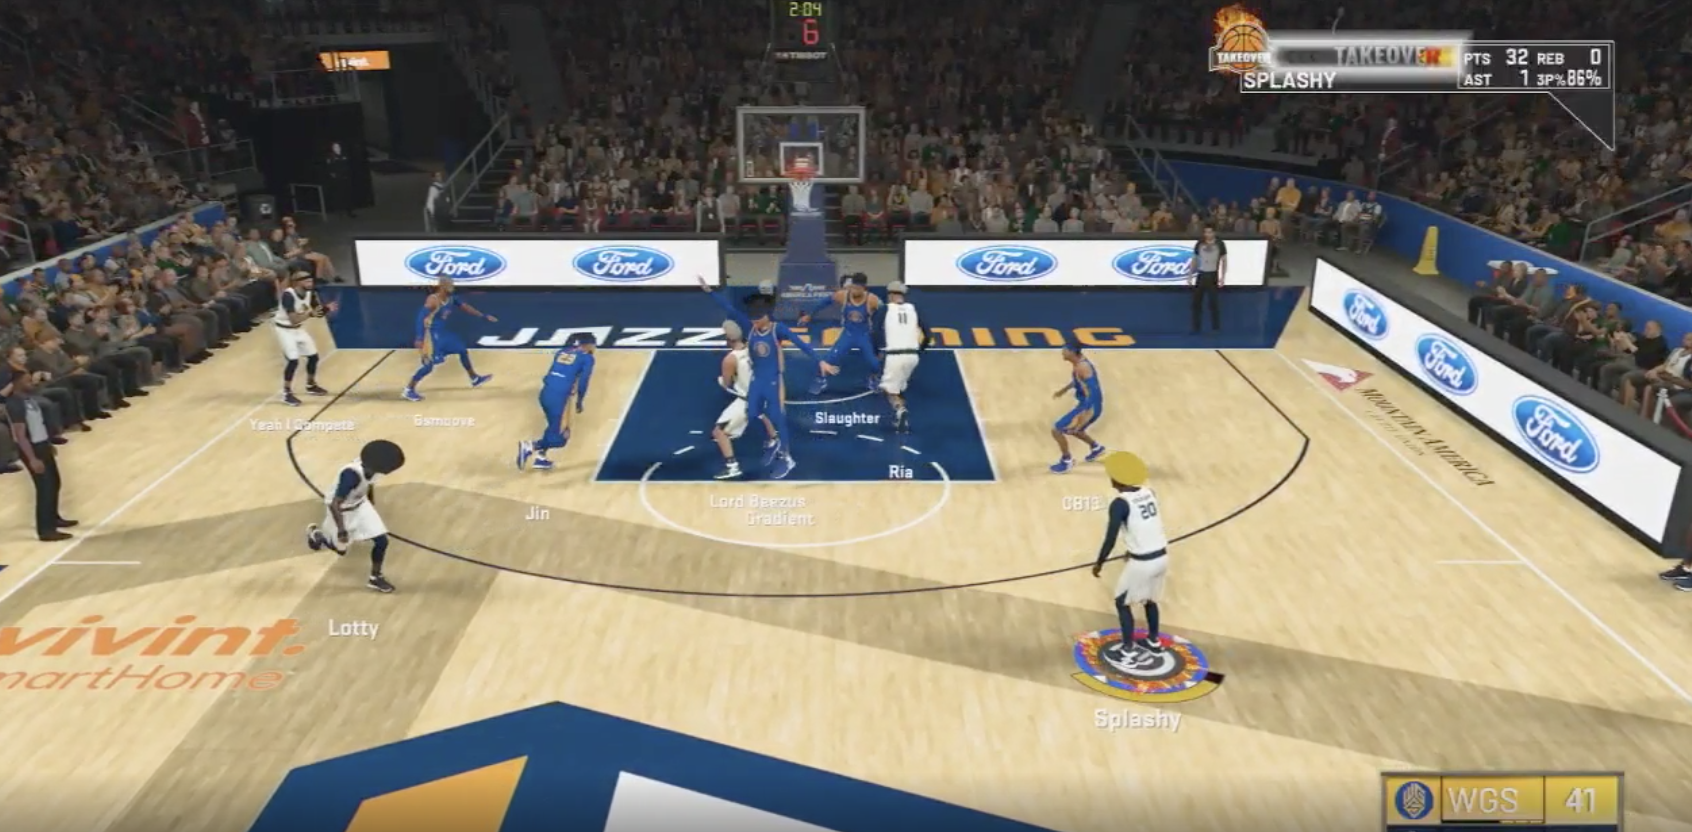 Jazz Gaming defeated an undefeated Warriors team in the NBA 2K League, which announced four new partners